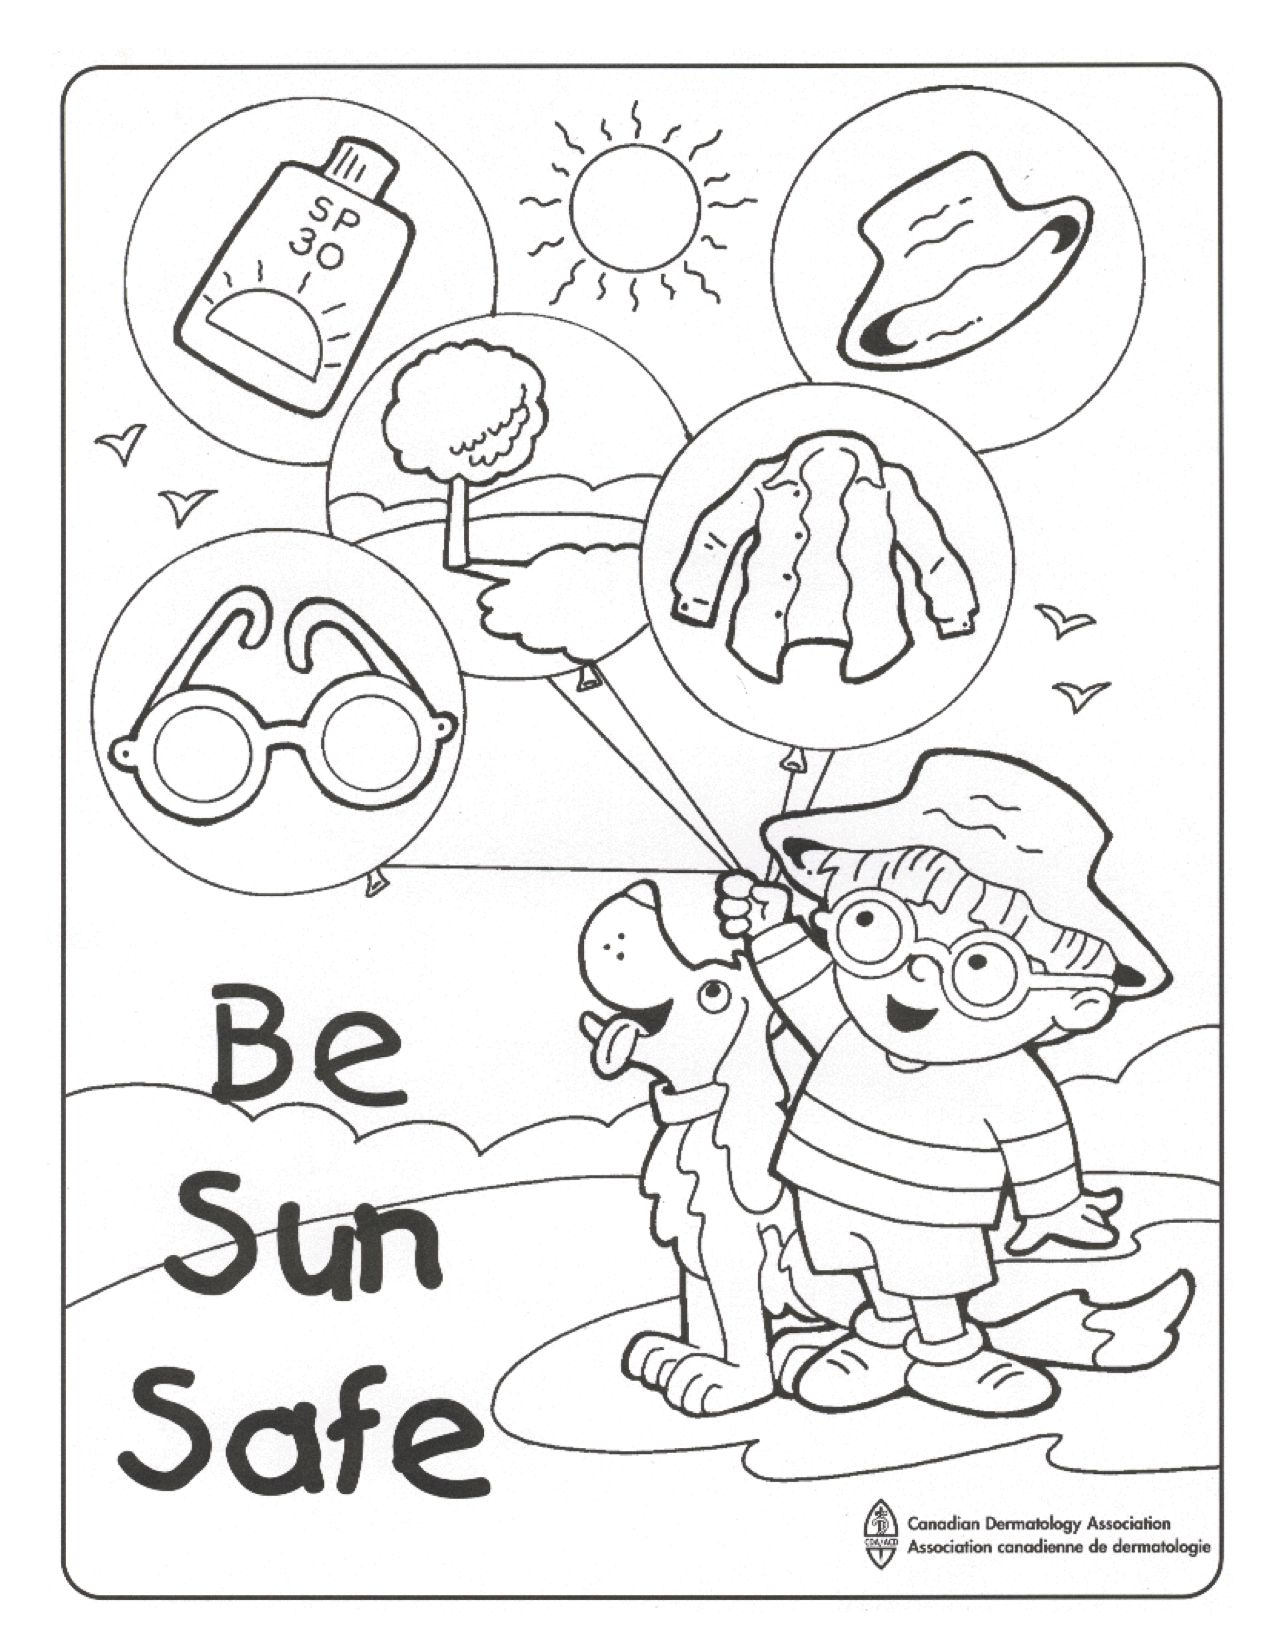 safety gear coloring pages - photo#9